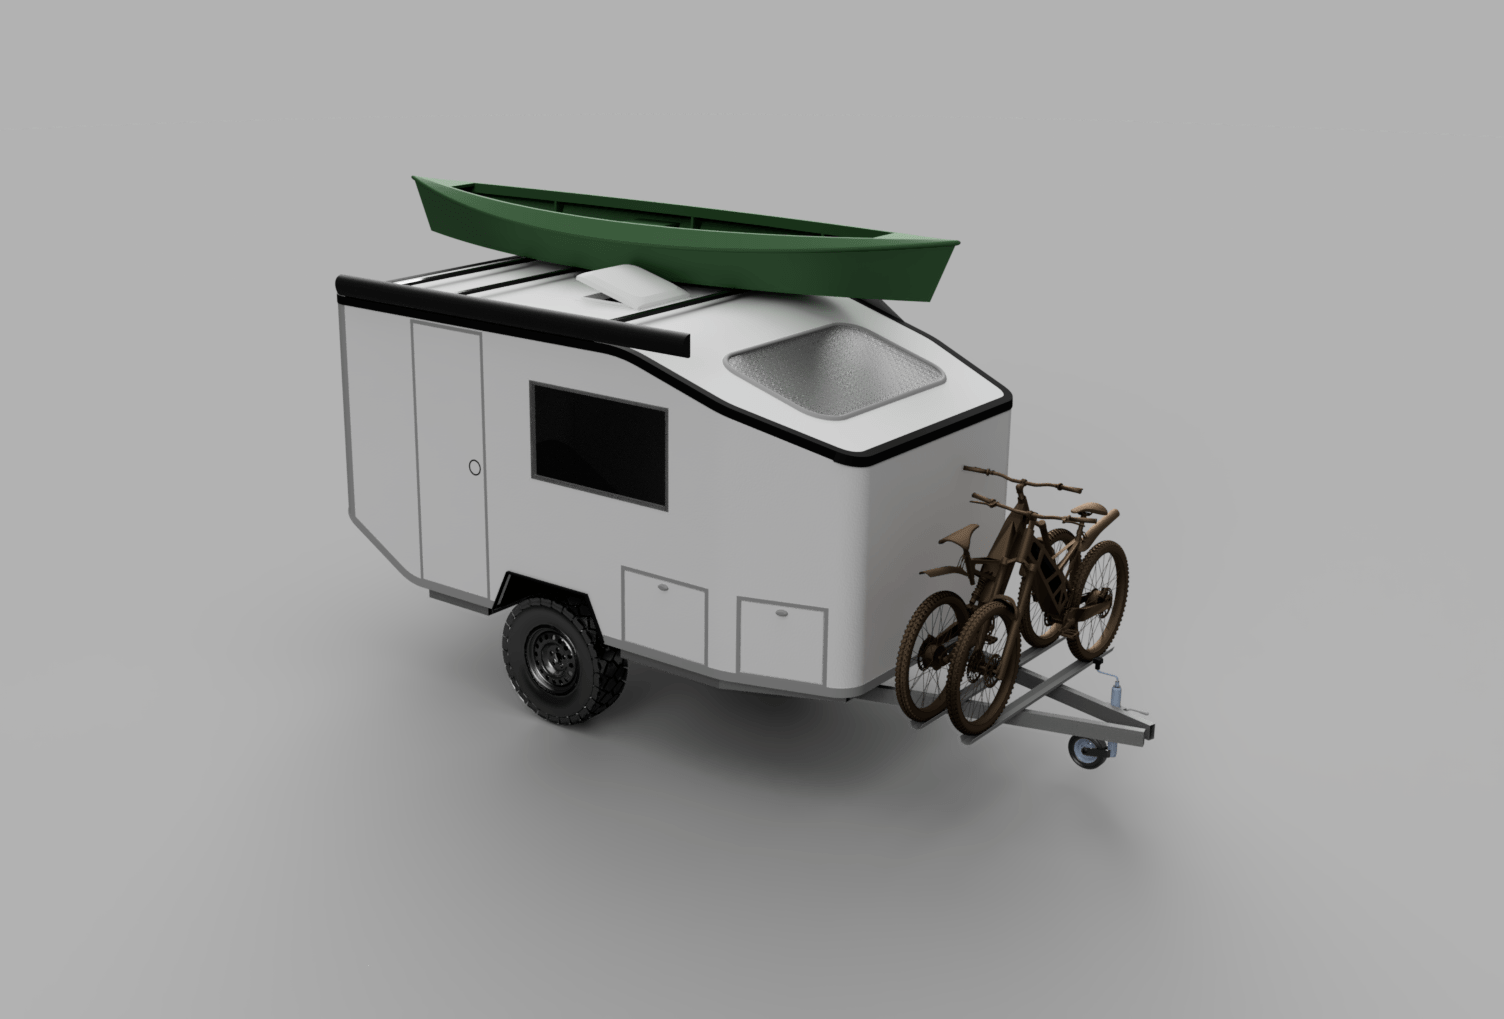 off-road-small-camper-expedition